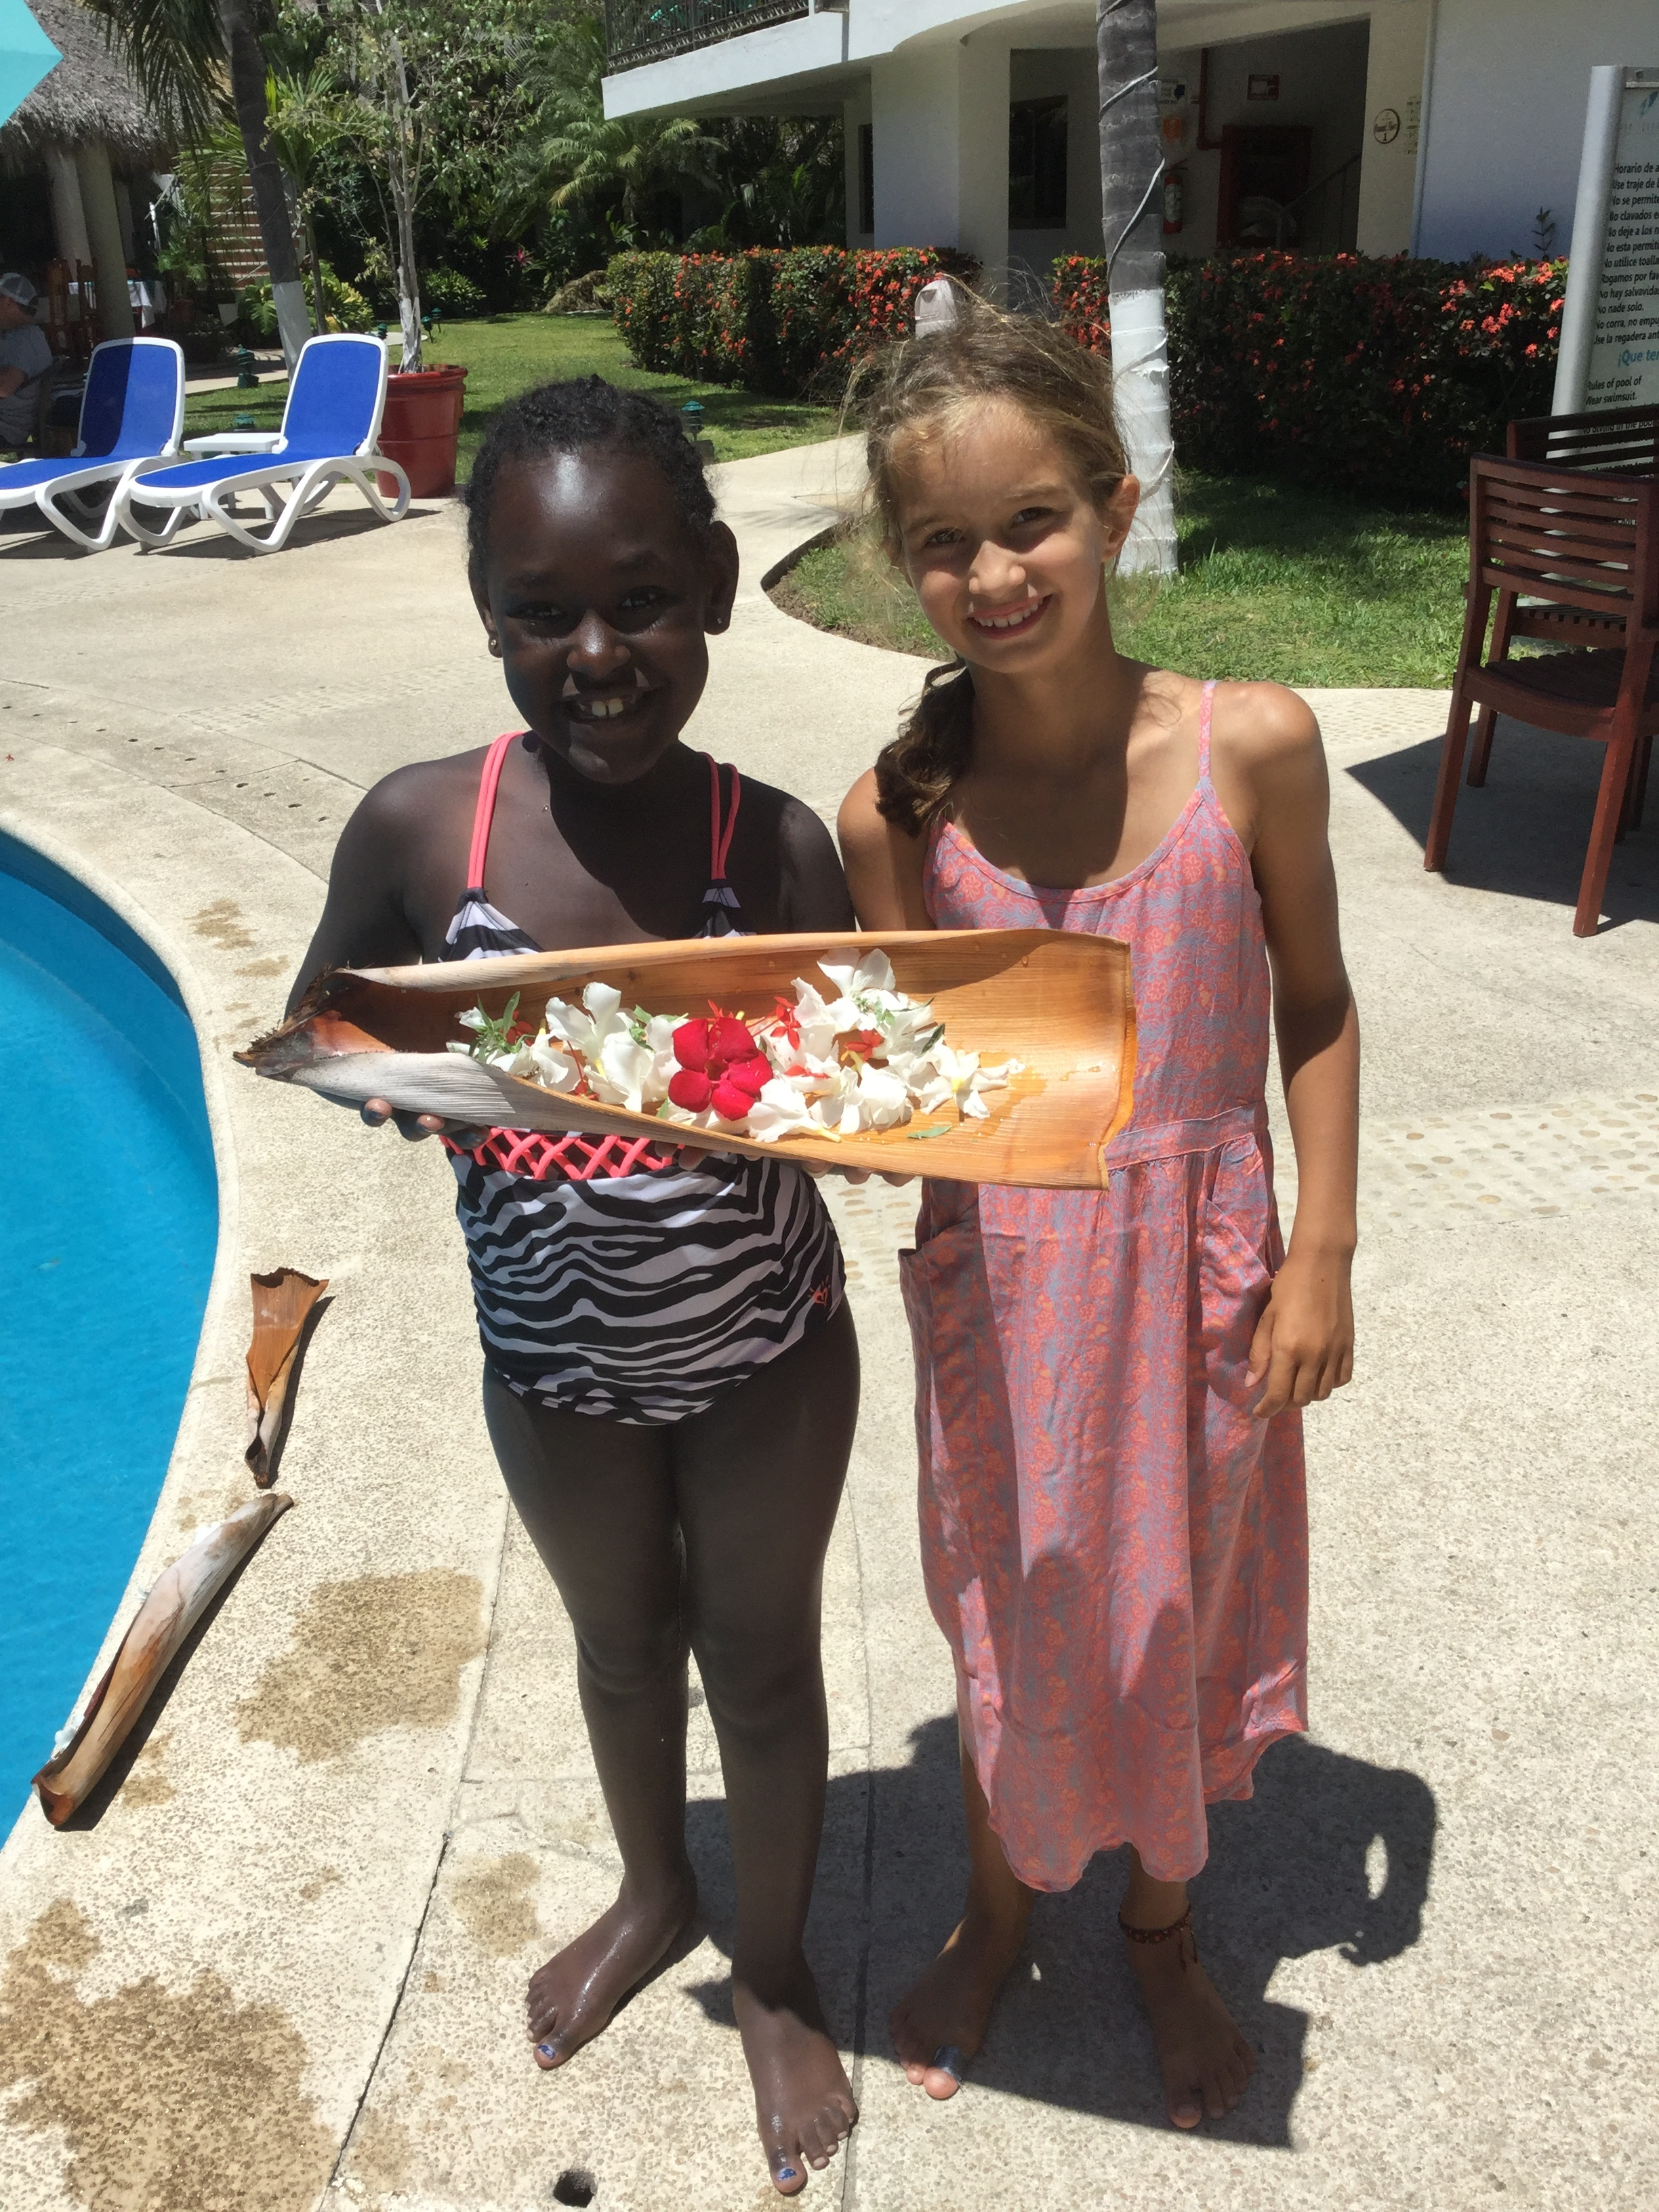 Lili and friend Kaylee from Oregon made little flower rafts for the pool. Kaylee was born in Ethiopia!